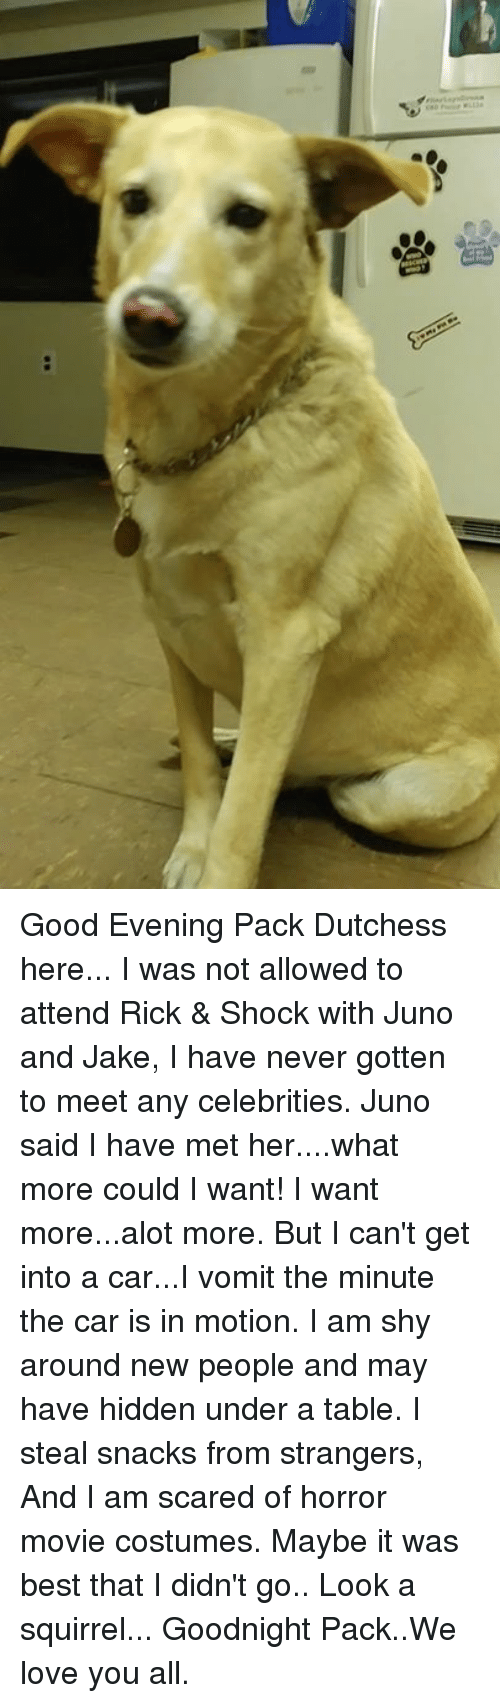 Love, Memes, and Best: Good Evening Pack Dutchess here...  I was not allowed to attend Rick & Shock with Juno and Jake, I have never gotten to meet any celebrities. Juno said I have met her....what more could I want!  I want more...alot more.  But I can't get into a car...I vomit the minute the car is in motion. I am shy around new people and may have hidden under a table. I steal snacks from strangers, And I am scared of horror movie costumes.  Maybe it was best that I didn't go..  Look a squirrel...  Goodnight Pack..We love you all.